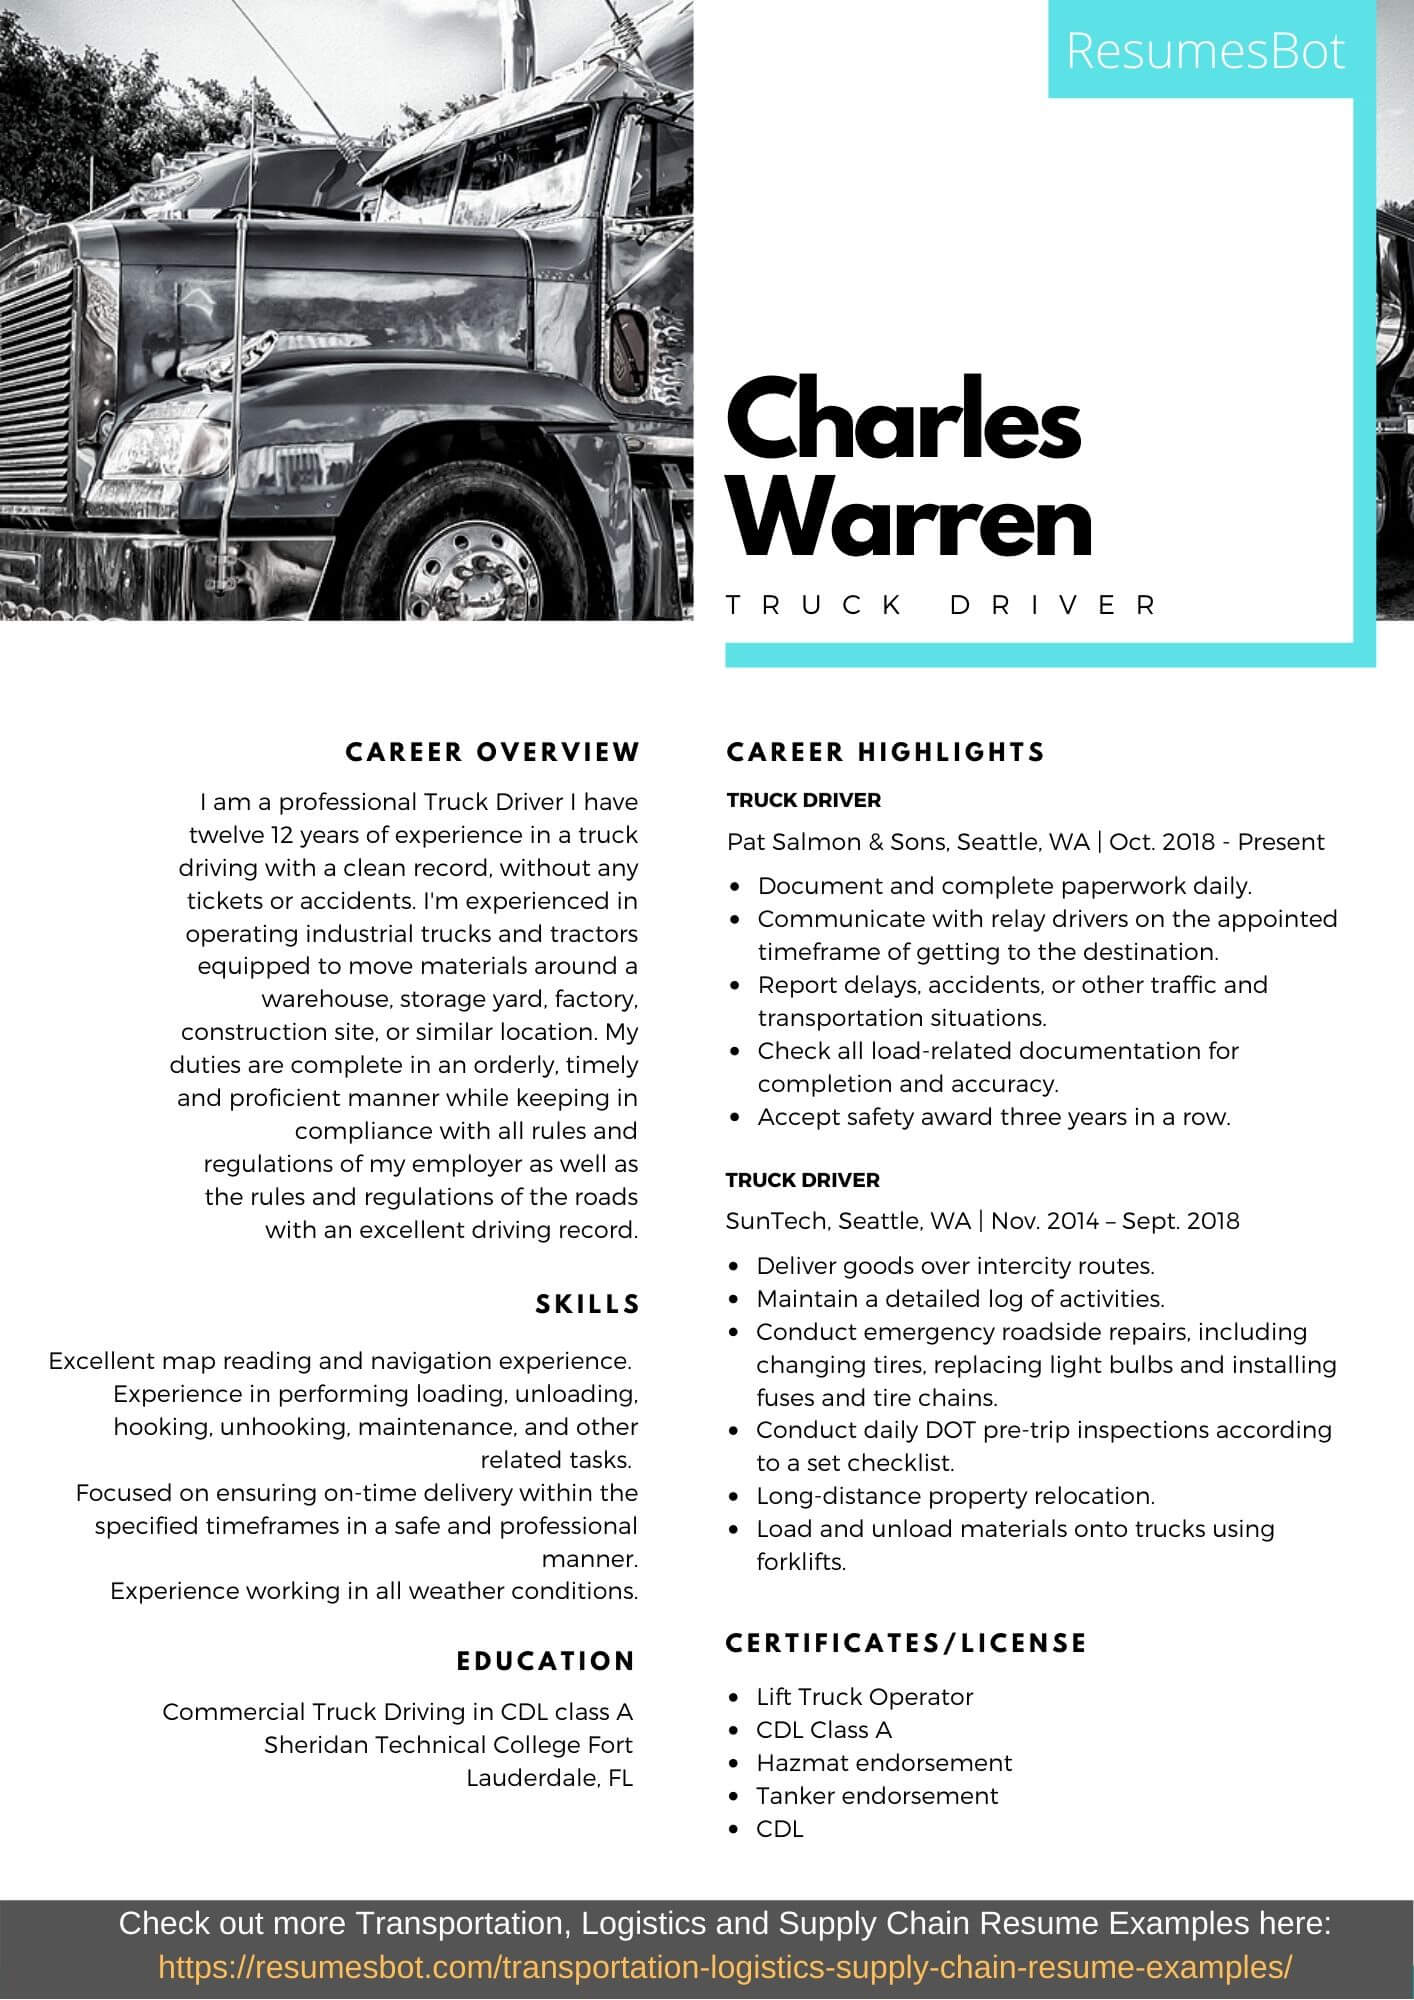 truck driver resume samples and tips pdf resumes bot cdl example home health aide Resume Cdl Class A Resume